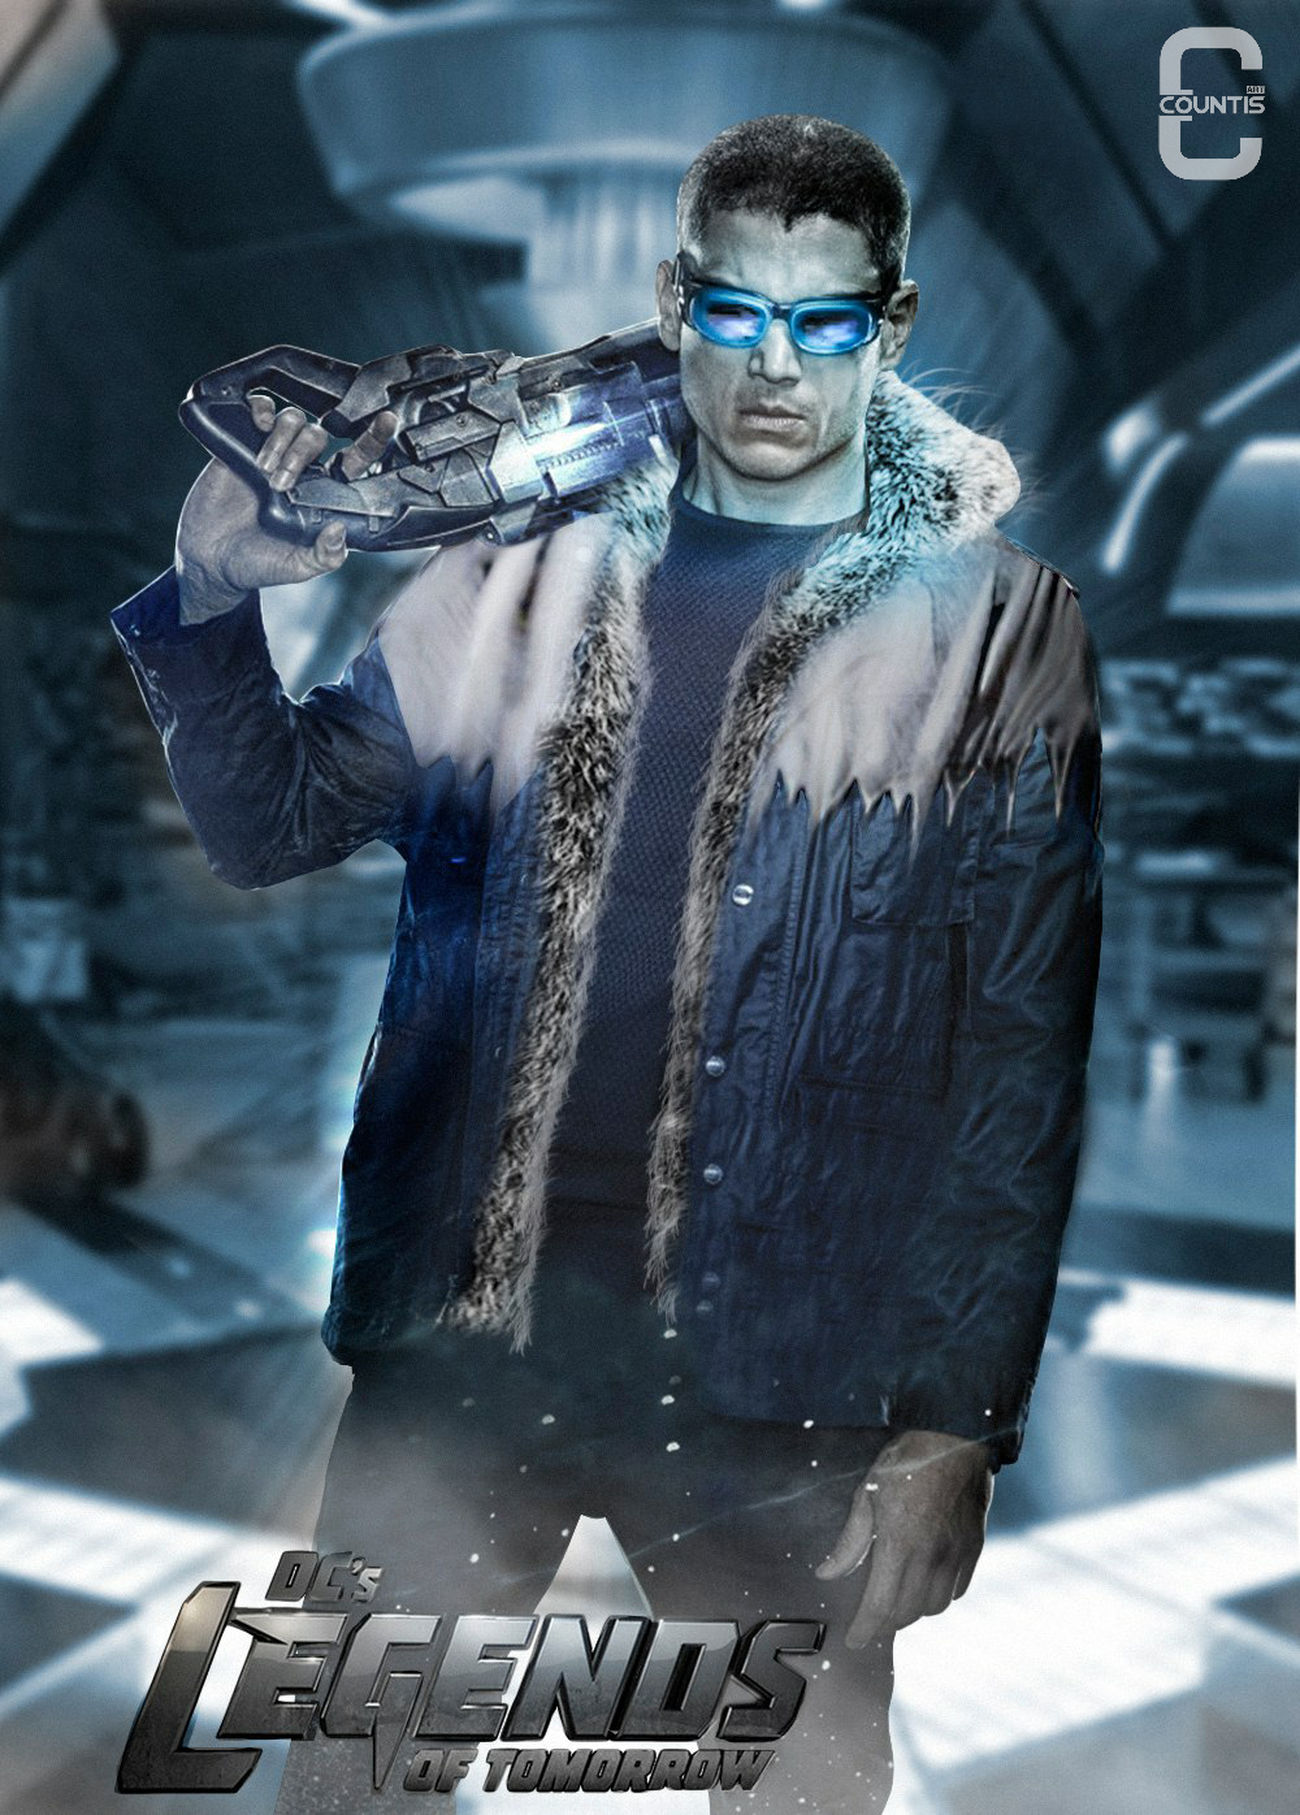 Captain Cold classic suit LegendsofTomorrow Leonardsnart Captaincold Fanart Digital Art Digitalart